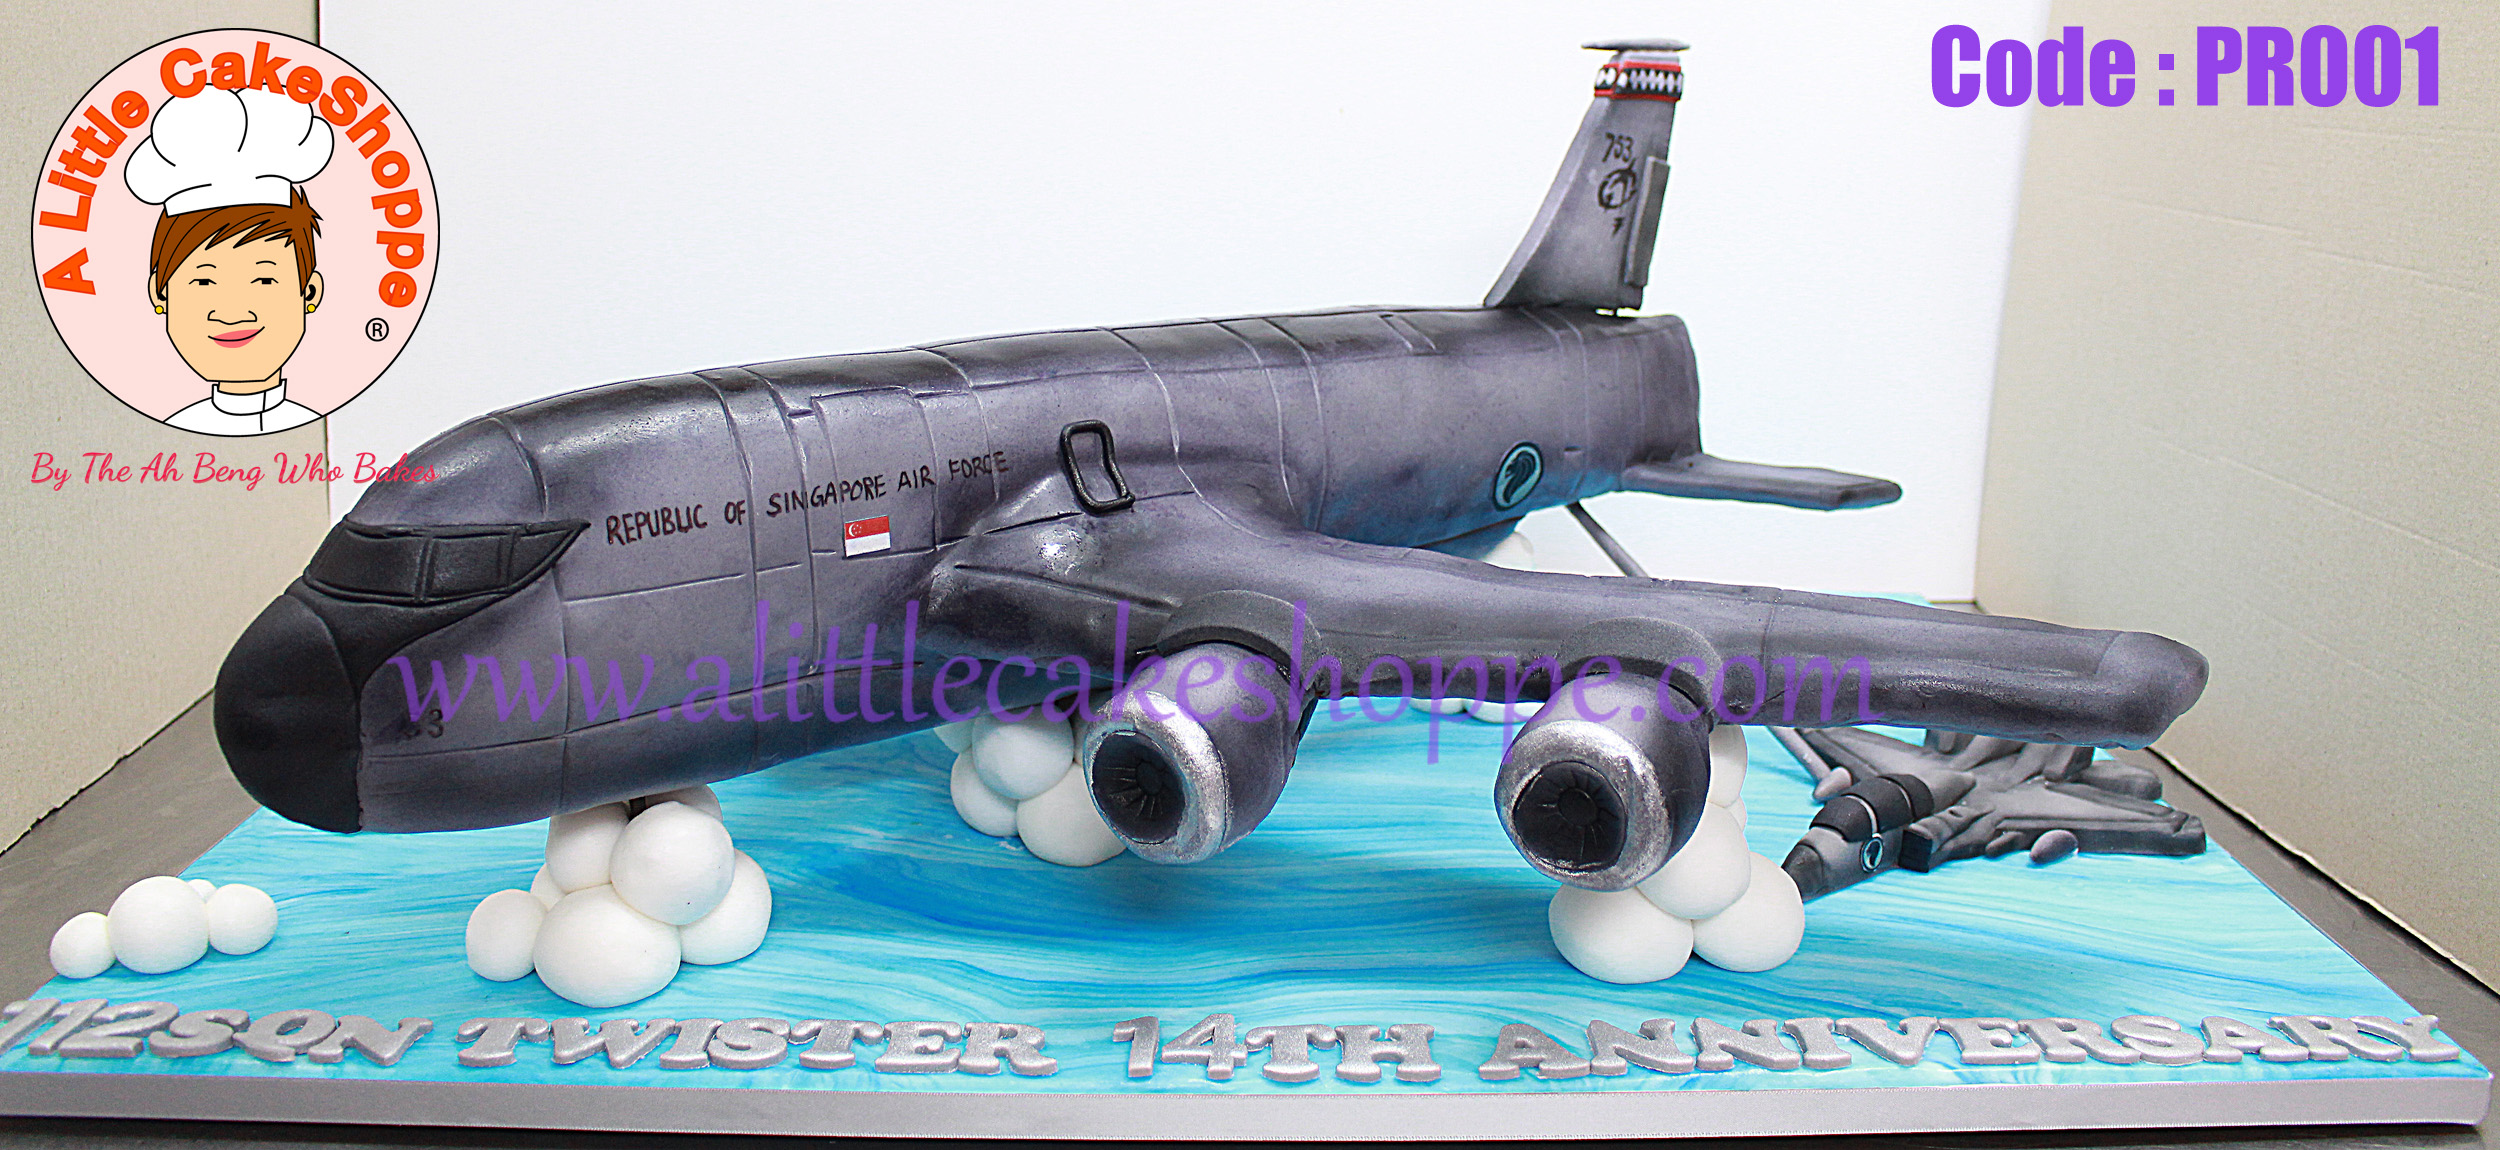 Best Customised Cake Shop Singapore custom cake 2D 3D birthday cake cupcakes desserts wedding corporate events anniversary 1st birthday 21st birthday fondant fresh cream buttercream cakes alittlecakeshoppe a little cake shoppe compliments review singapore bakers SG cake shop cakeshop ah beng who bakes plane rsaf